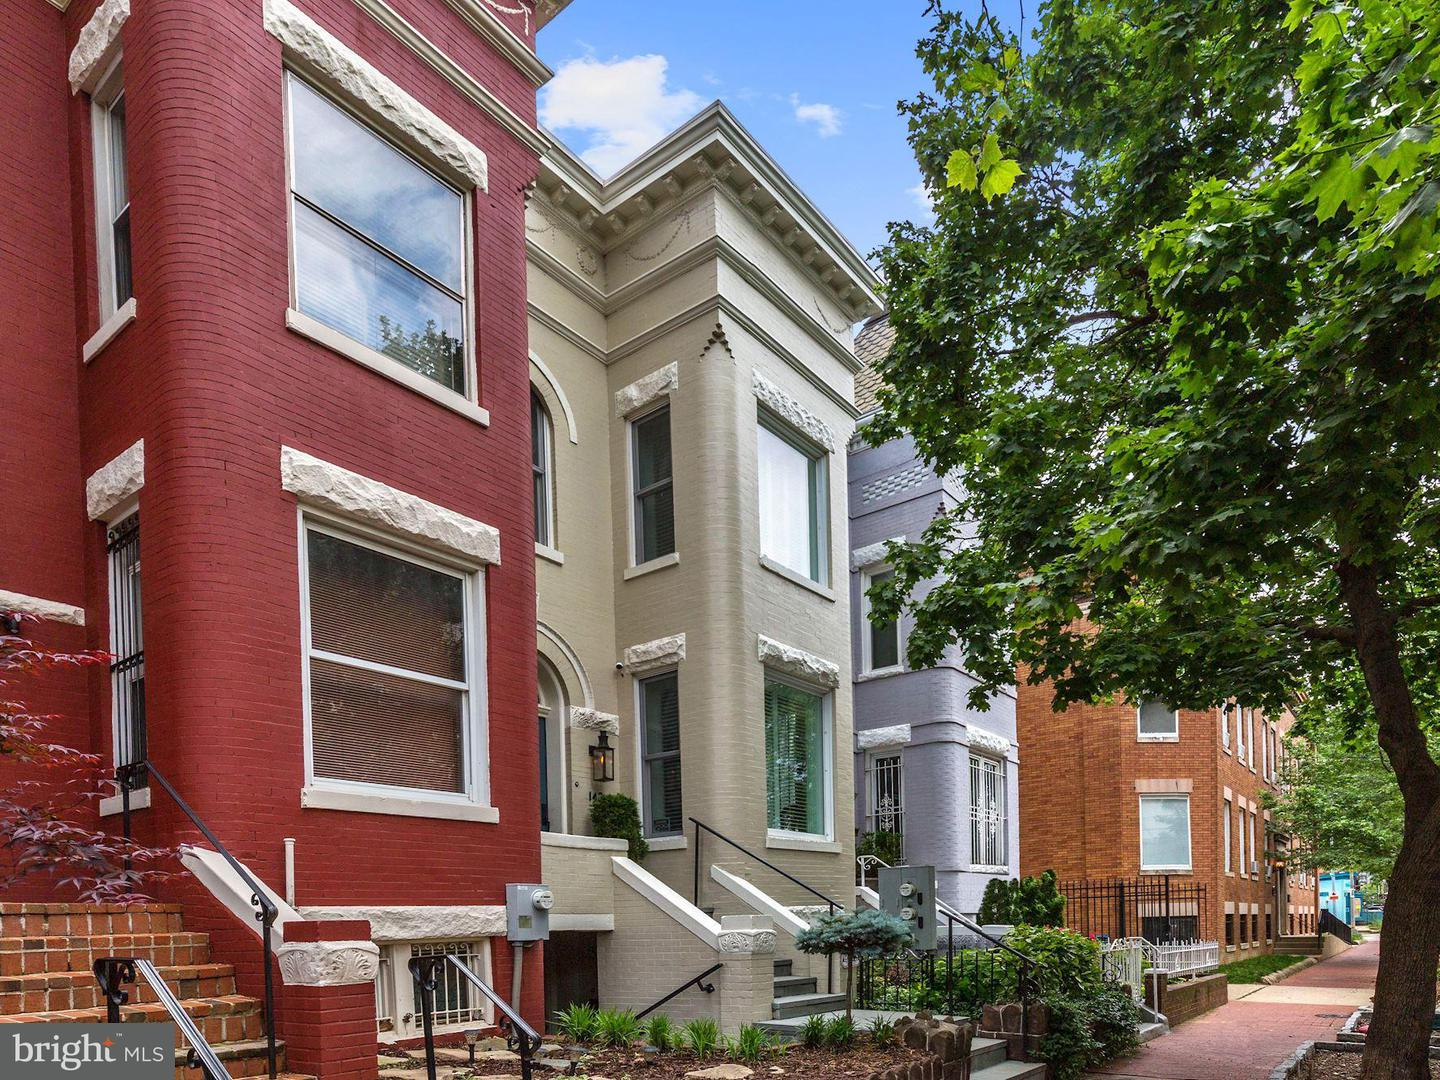 Single Family for Sale at 142 Seaton Pl NW Washington, District Of Columbia 20001 United States